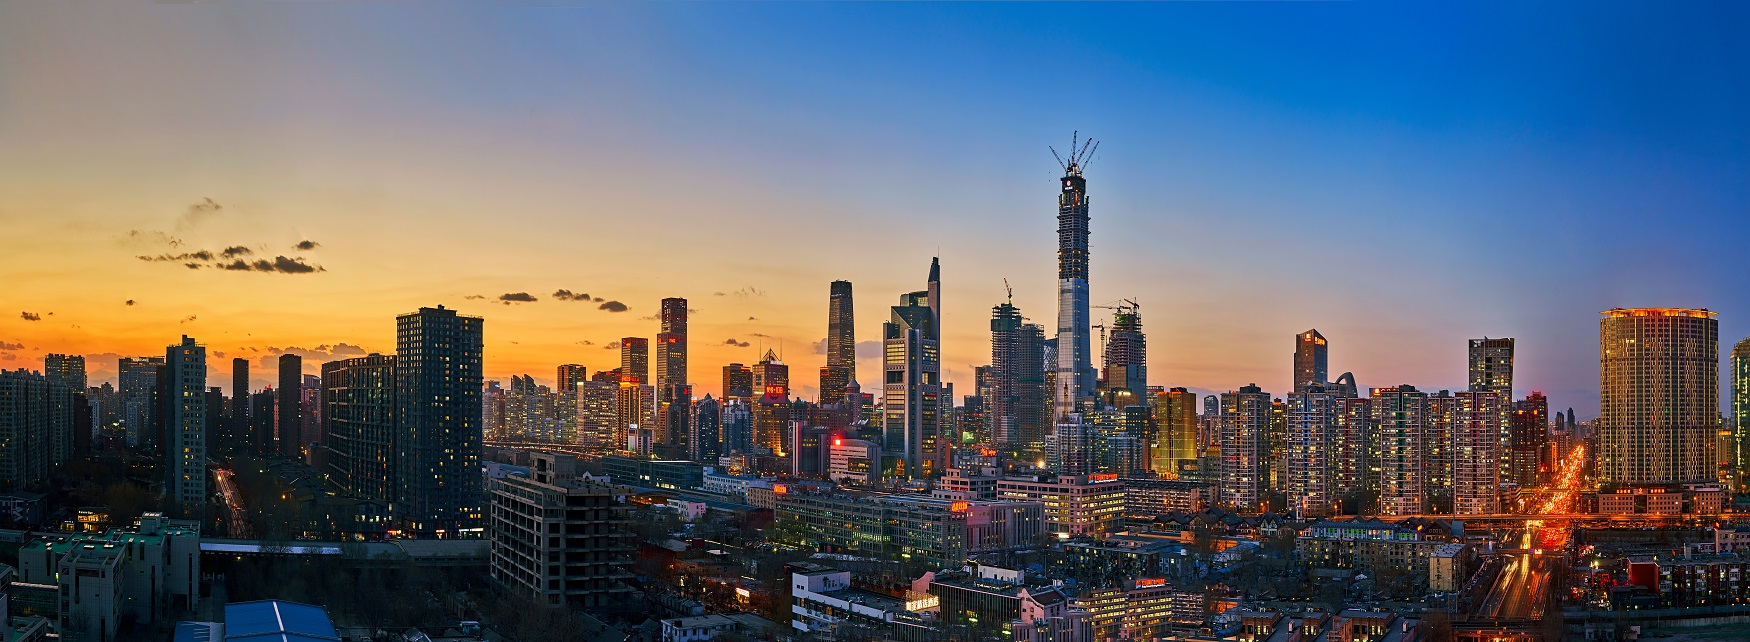 Sunset photo of Beijing with skyscrapers and lights